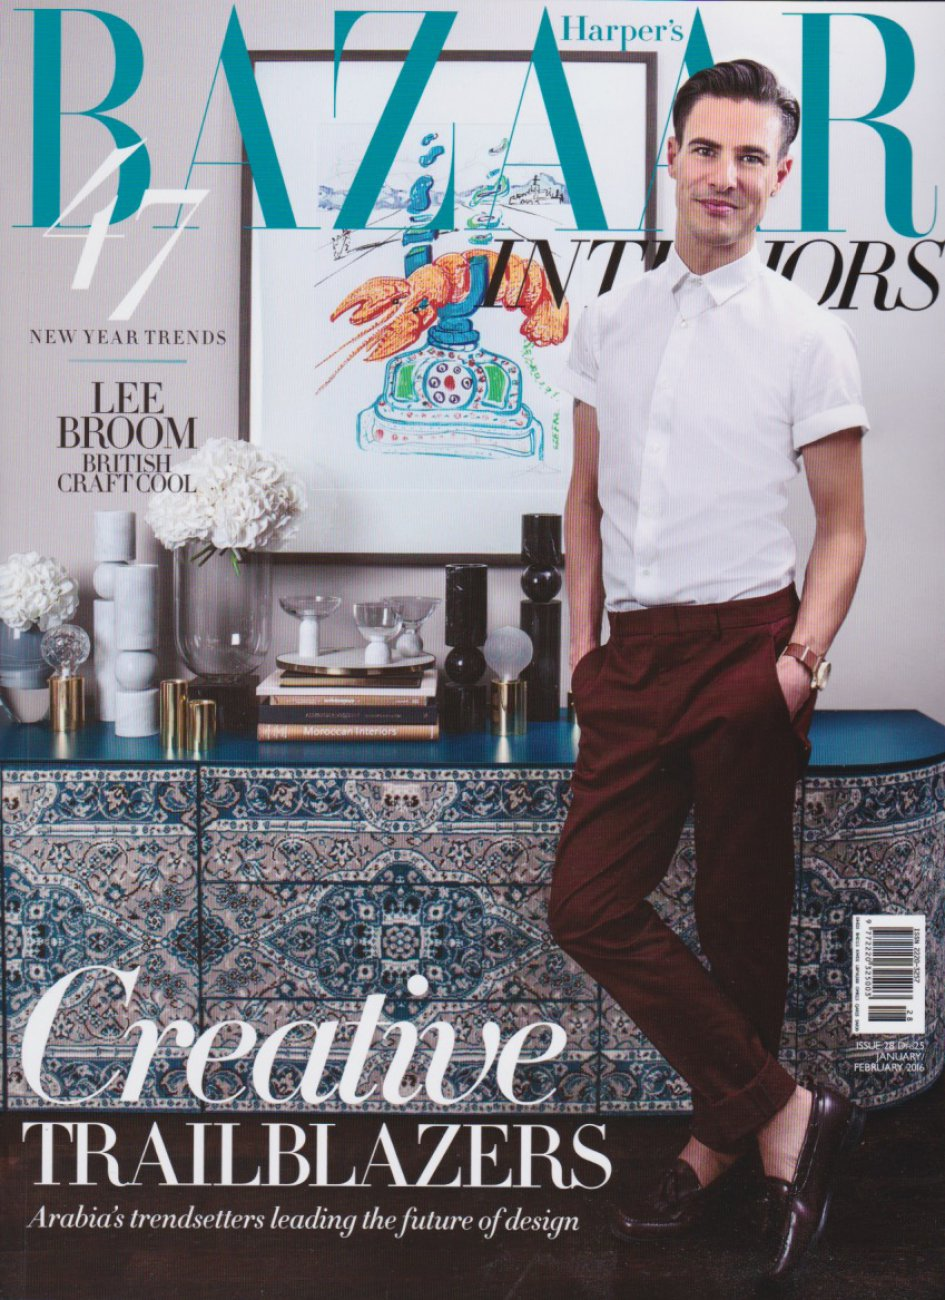 Harper's Bazaar Interiors - N.47 / January - February 2016 / Harper's Bazaar Interiors